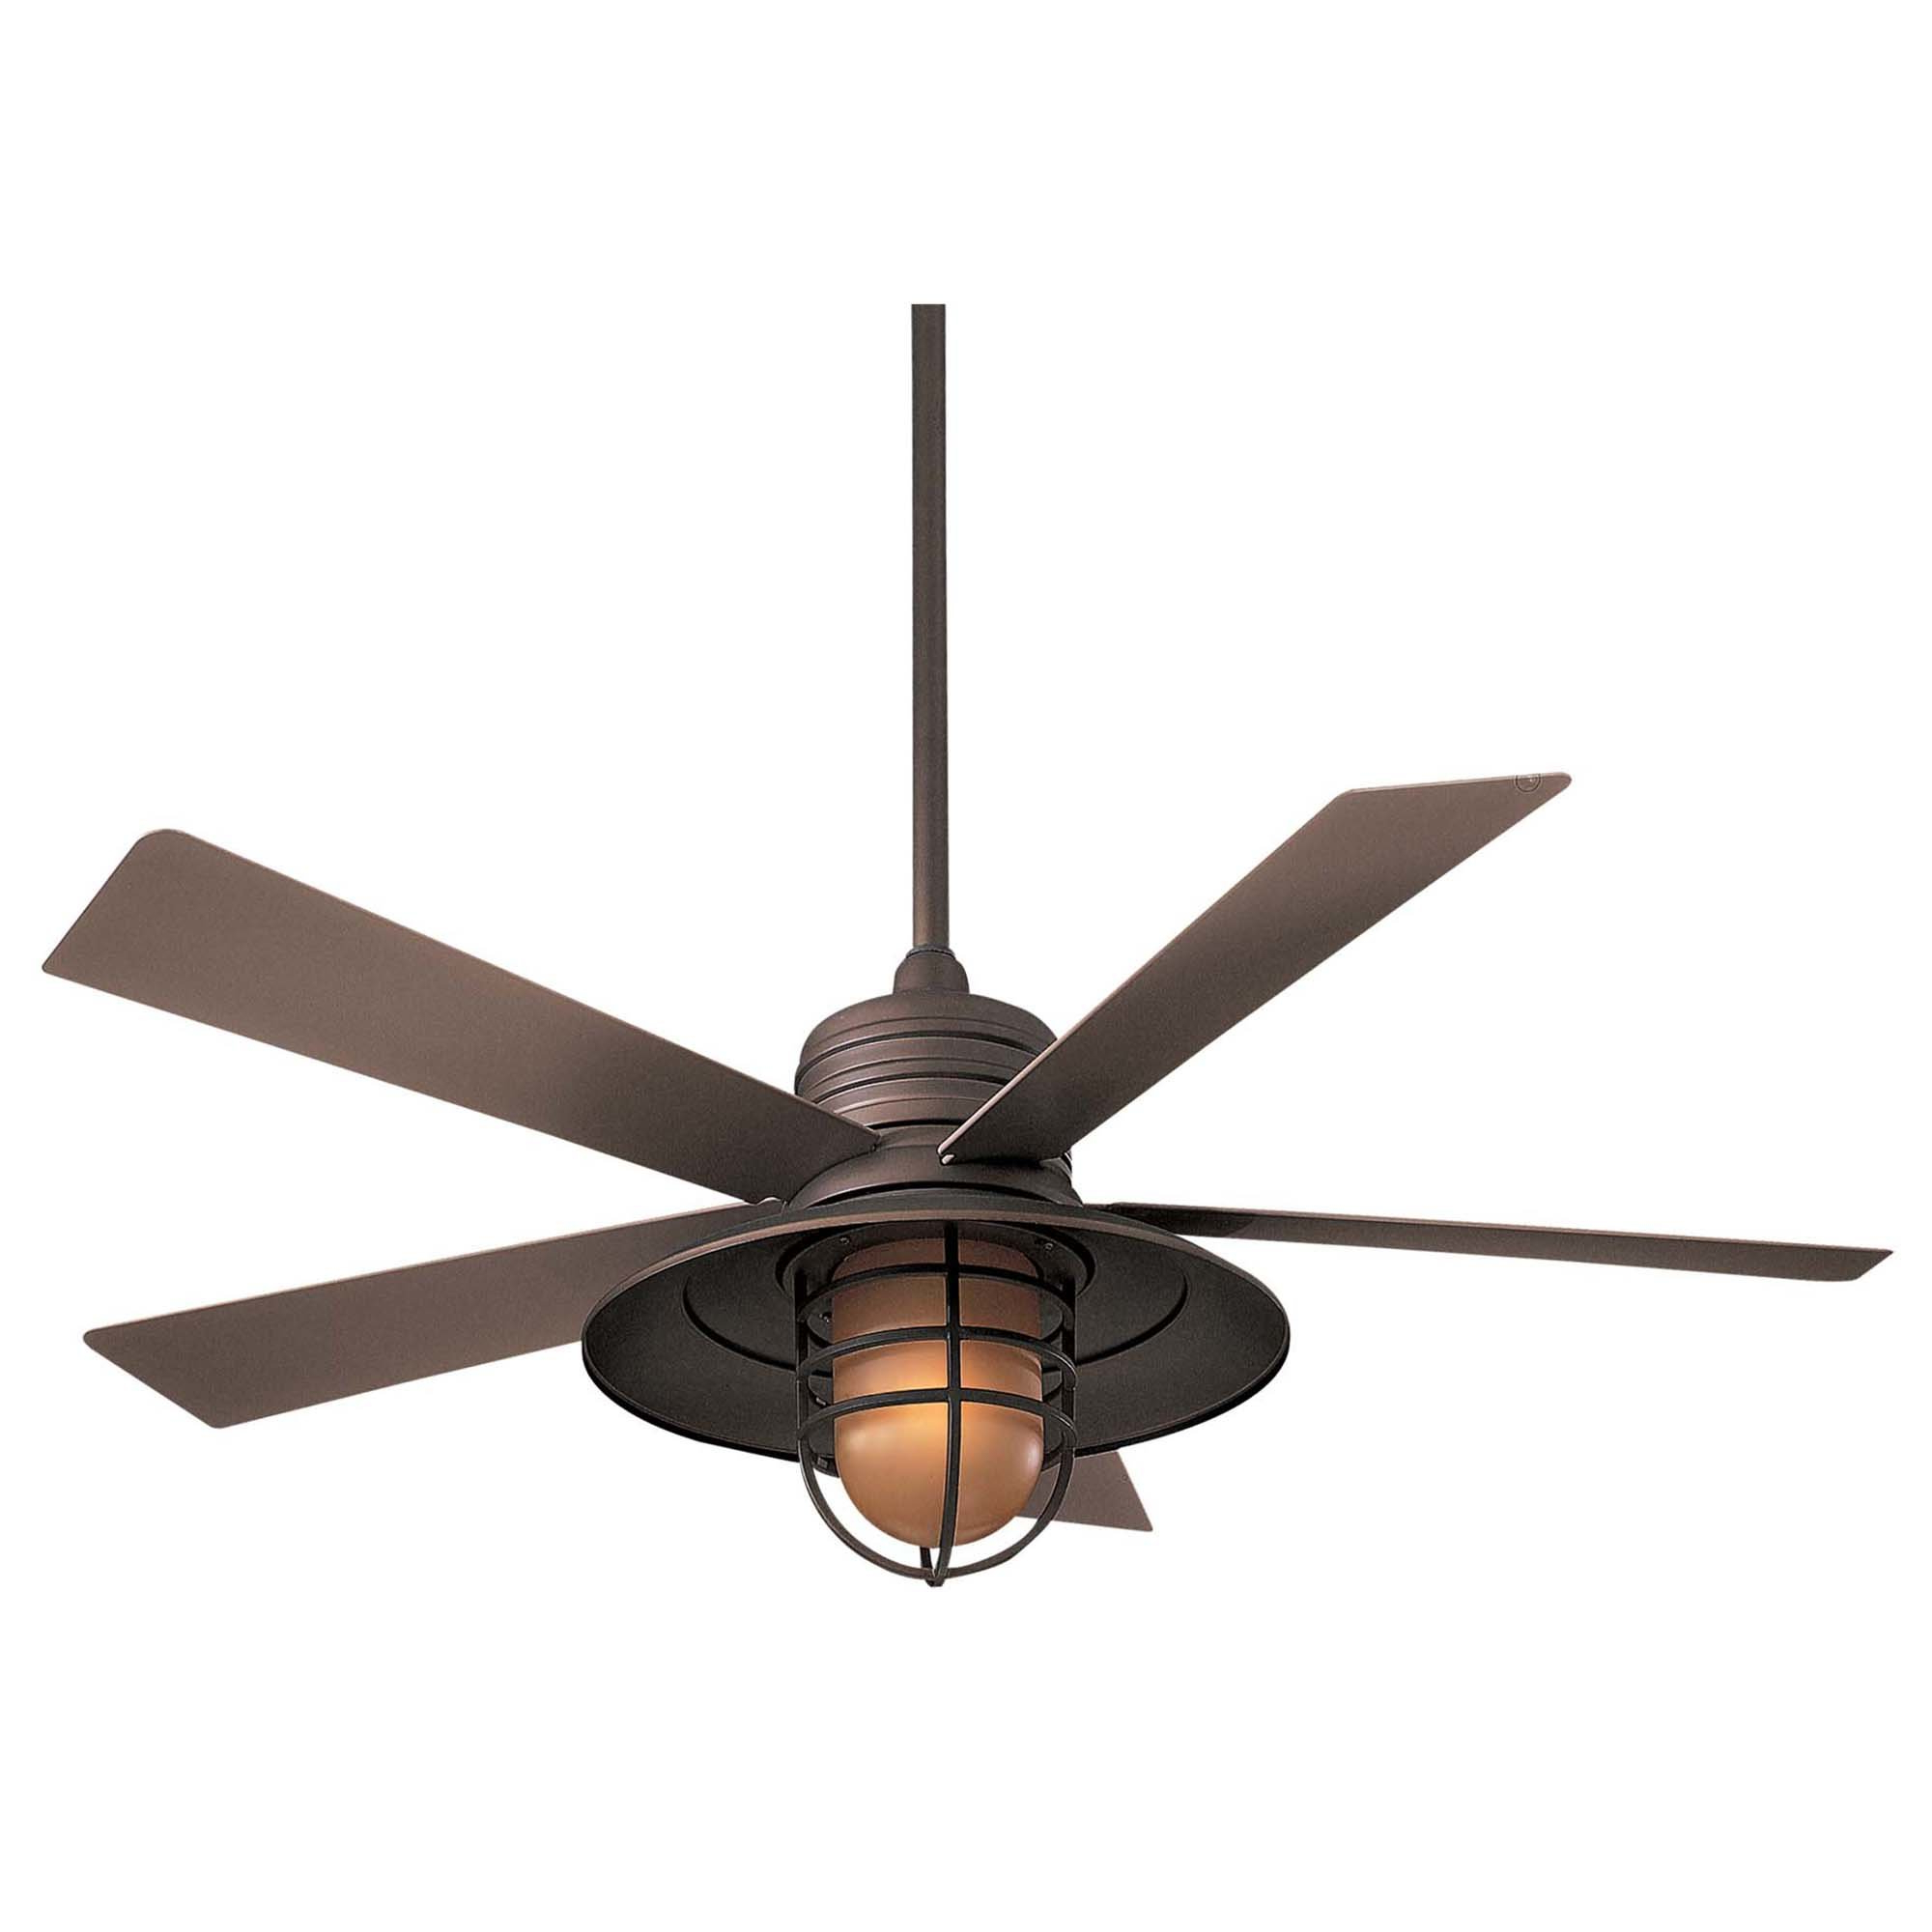 Popular Rainman 5 Blade Outdoor Ceiling Fans Regarding Minka Aire 54 Rainman 5 Blade Outdoor Ceiling Fan (View 11 of 20)